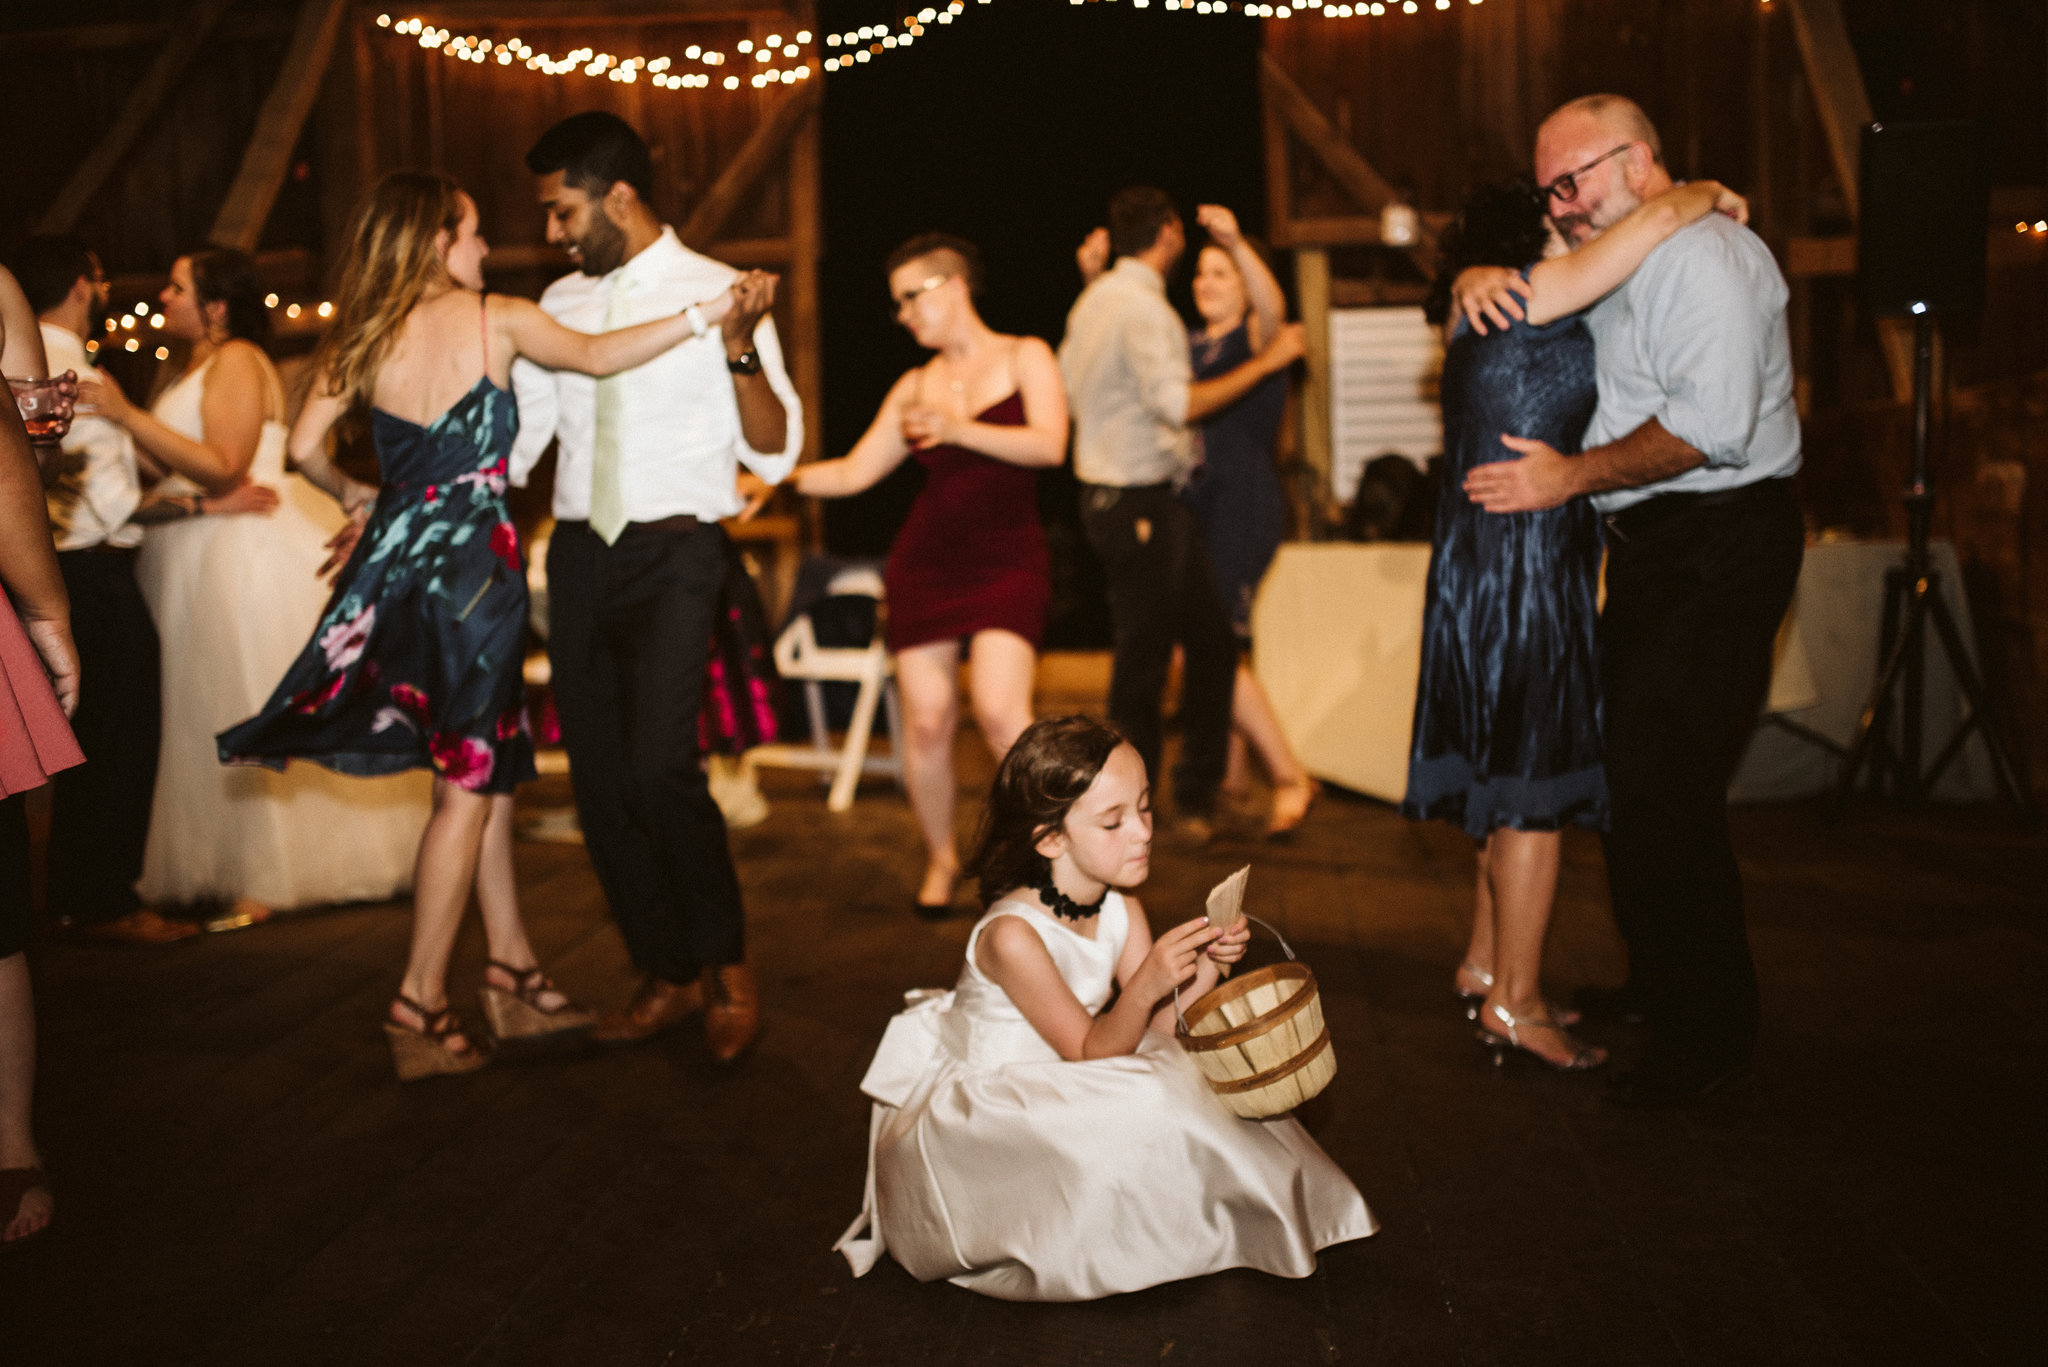 Rocklands Farm, Maryland, Intimate Wedding, Baltimore Wedding Photographer, Sungold Flower Co, Rustic, Romantic, Barn Wedding, Flower Girl on Dance Floor, Guests Dancing